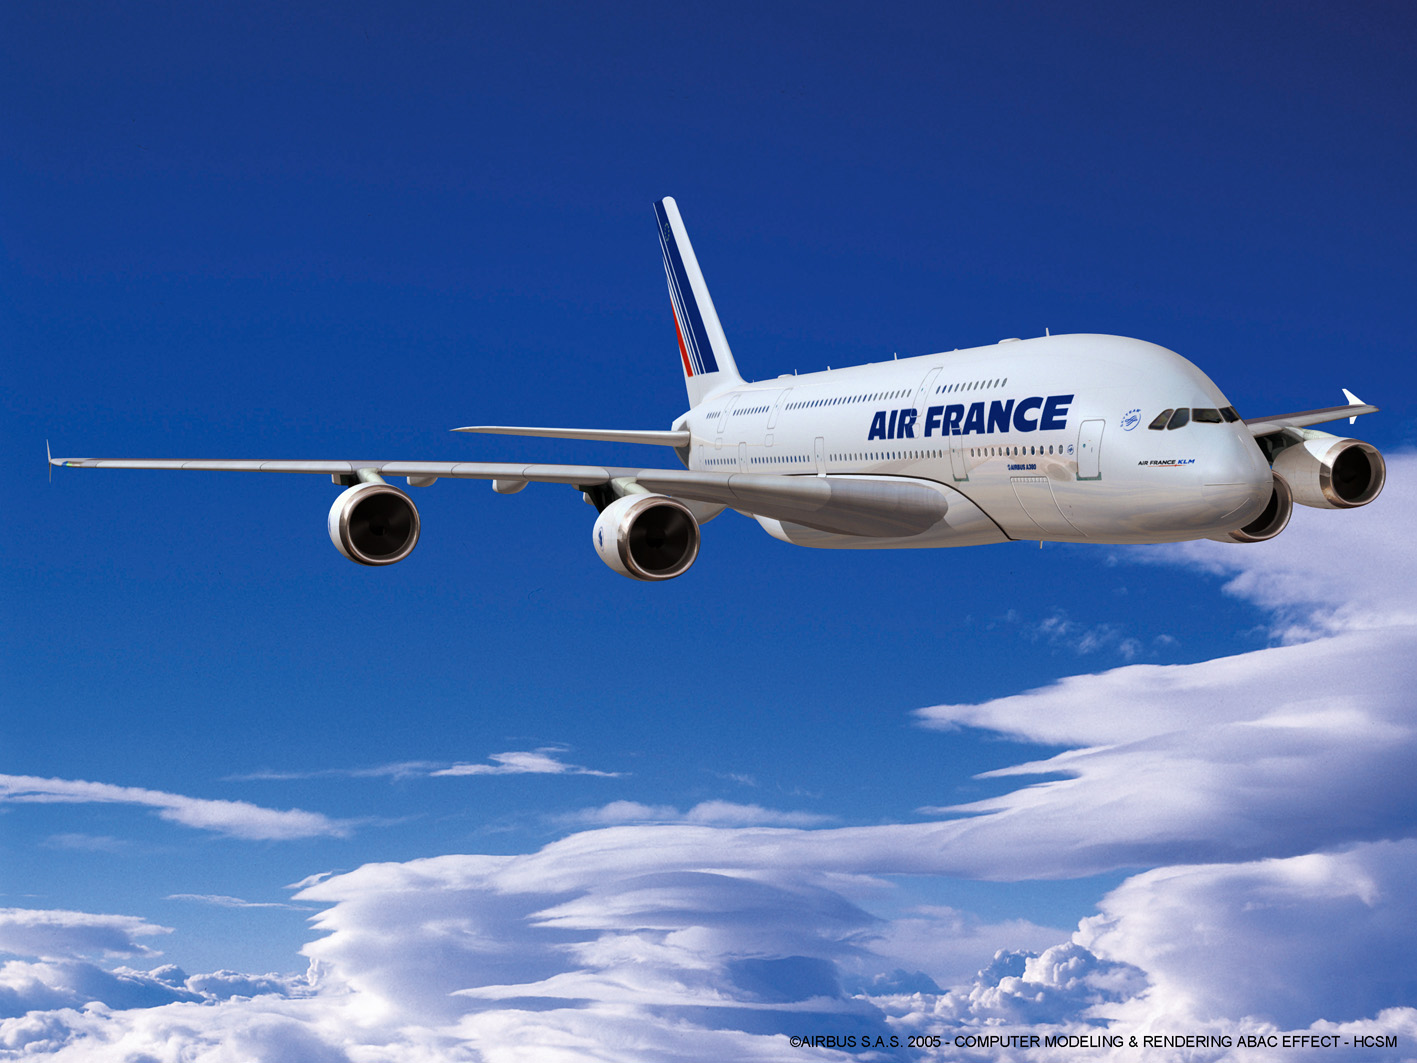 http://www.japon-voyage.com/wp-content/uploads/2010/09/air-france-A380.jpg